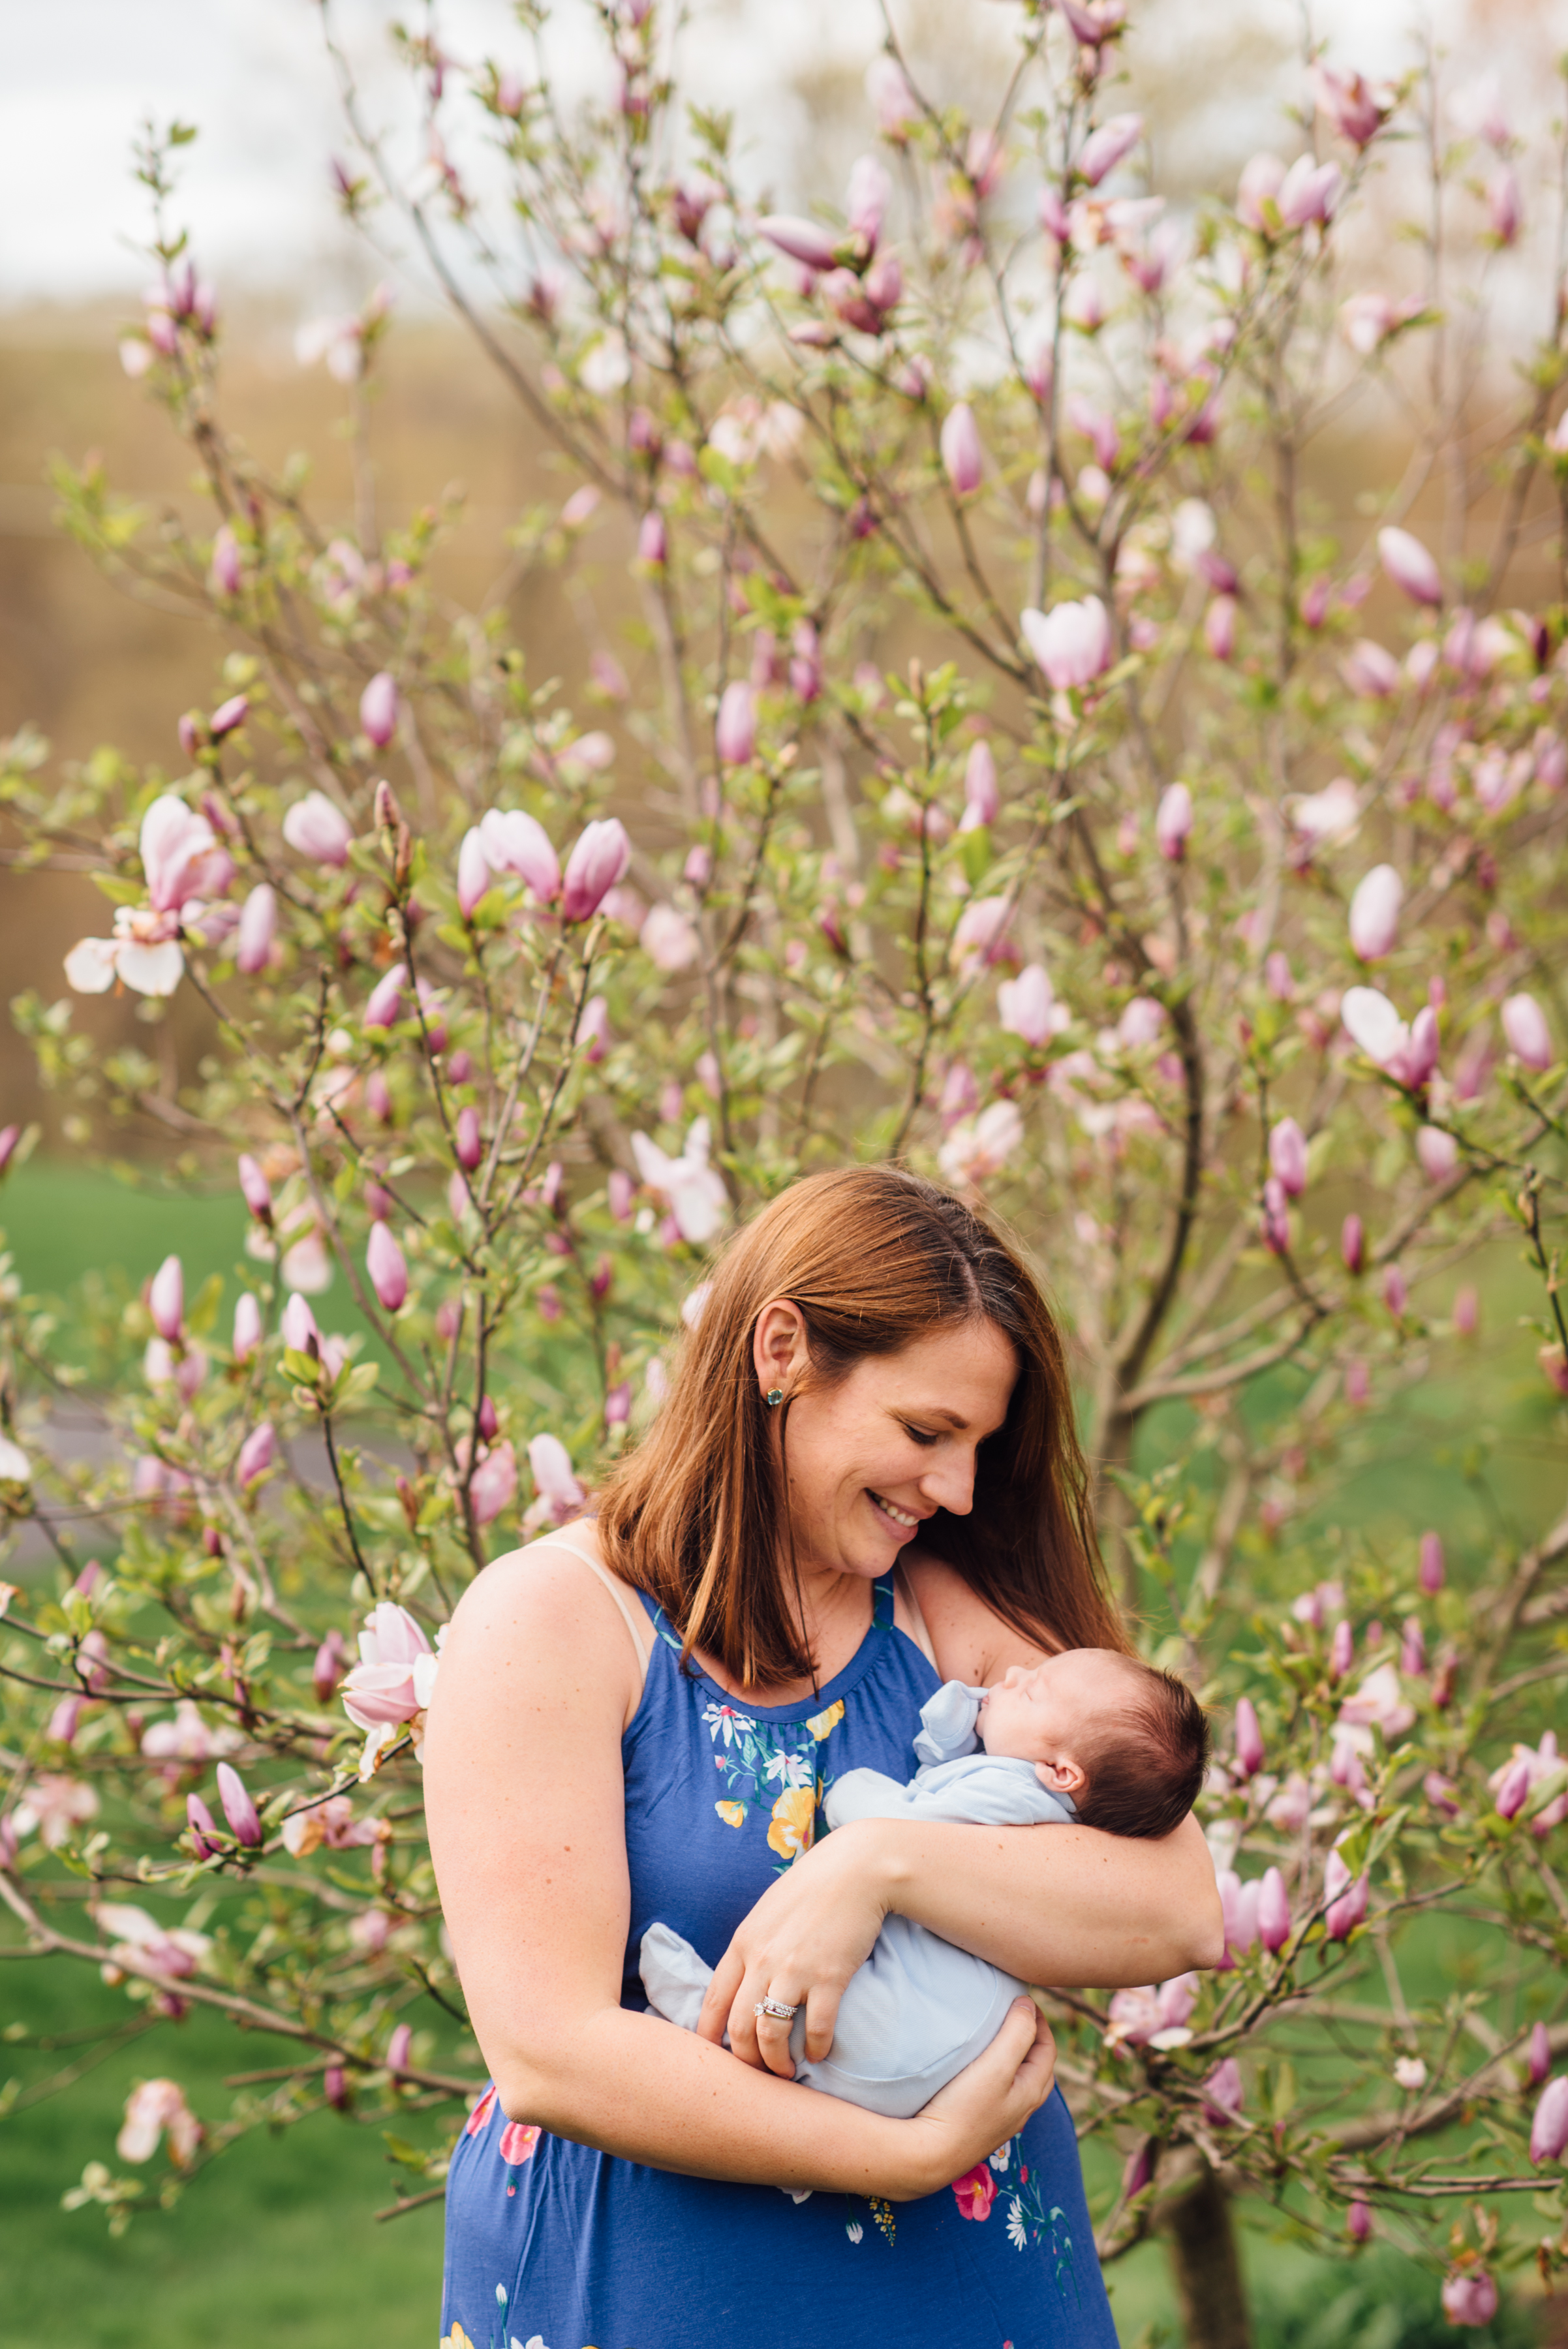 Lifestyle-Family-Maternity-Photography-Pittsburgh-Rachel-Rossetti